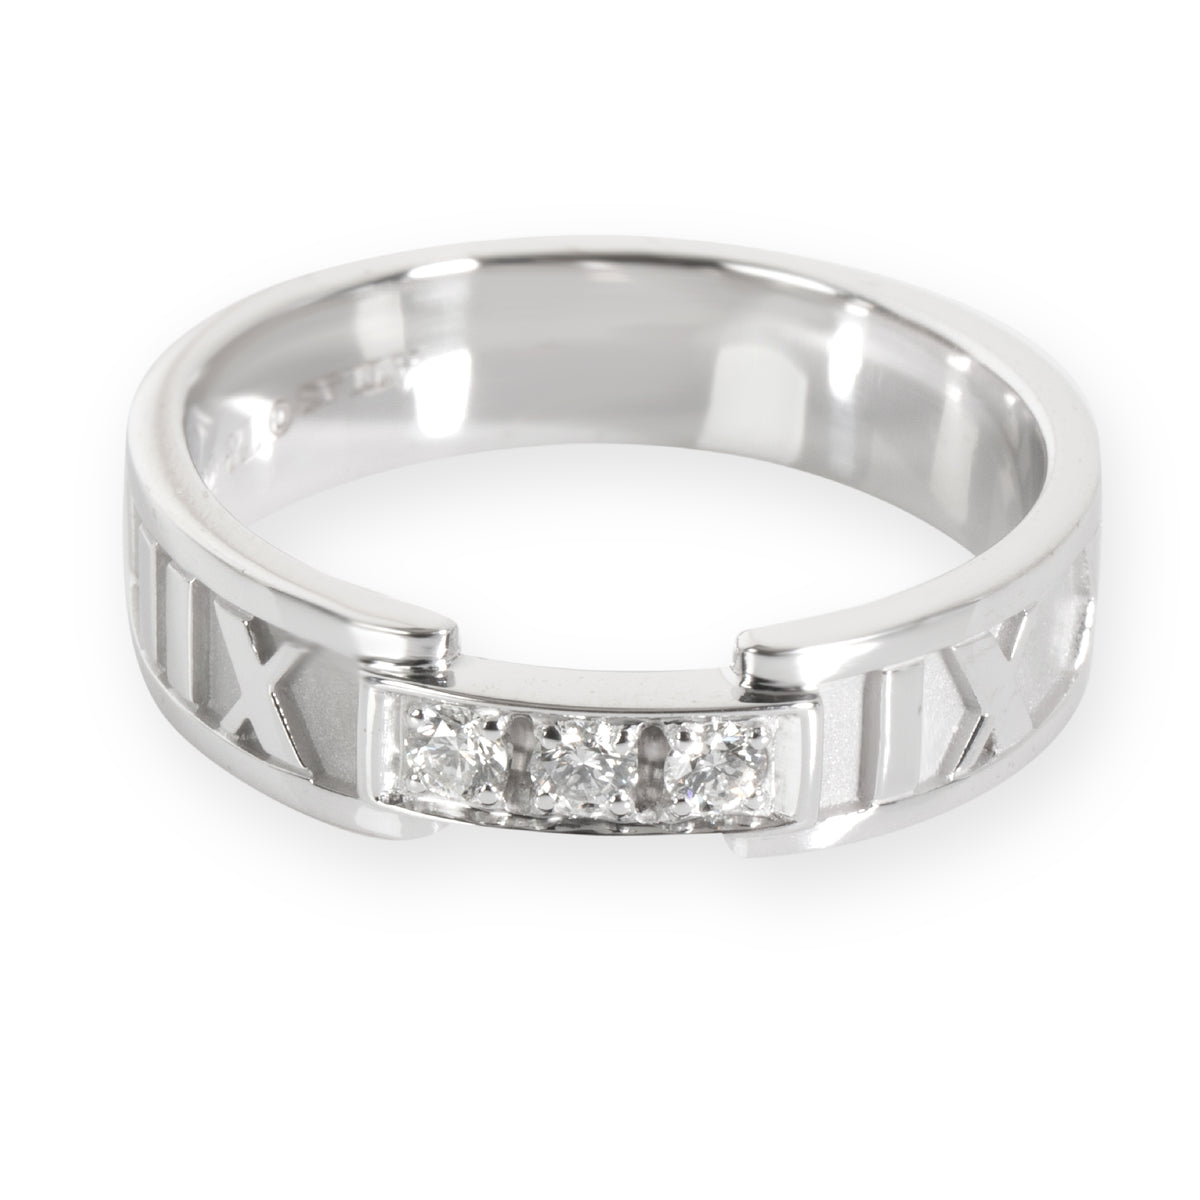 Tiffany & Co. Atlas Diamond Ring in 18KT White Gold 0.15 CTW